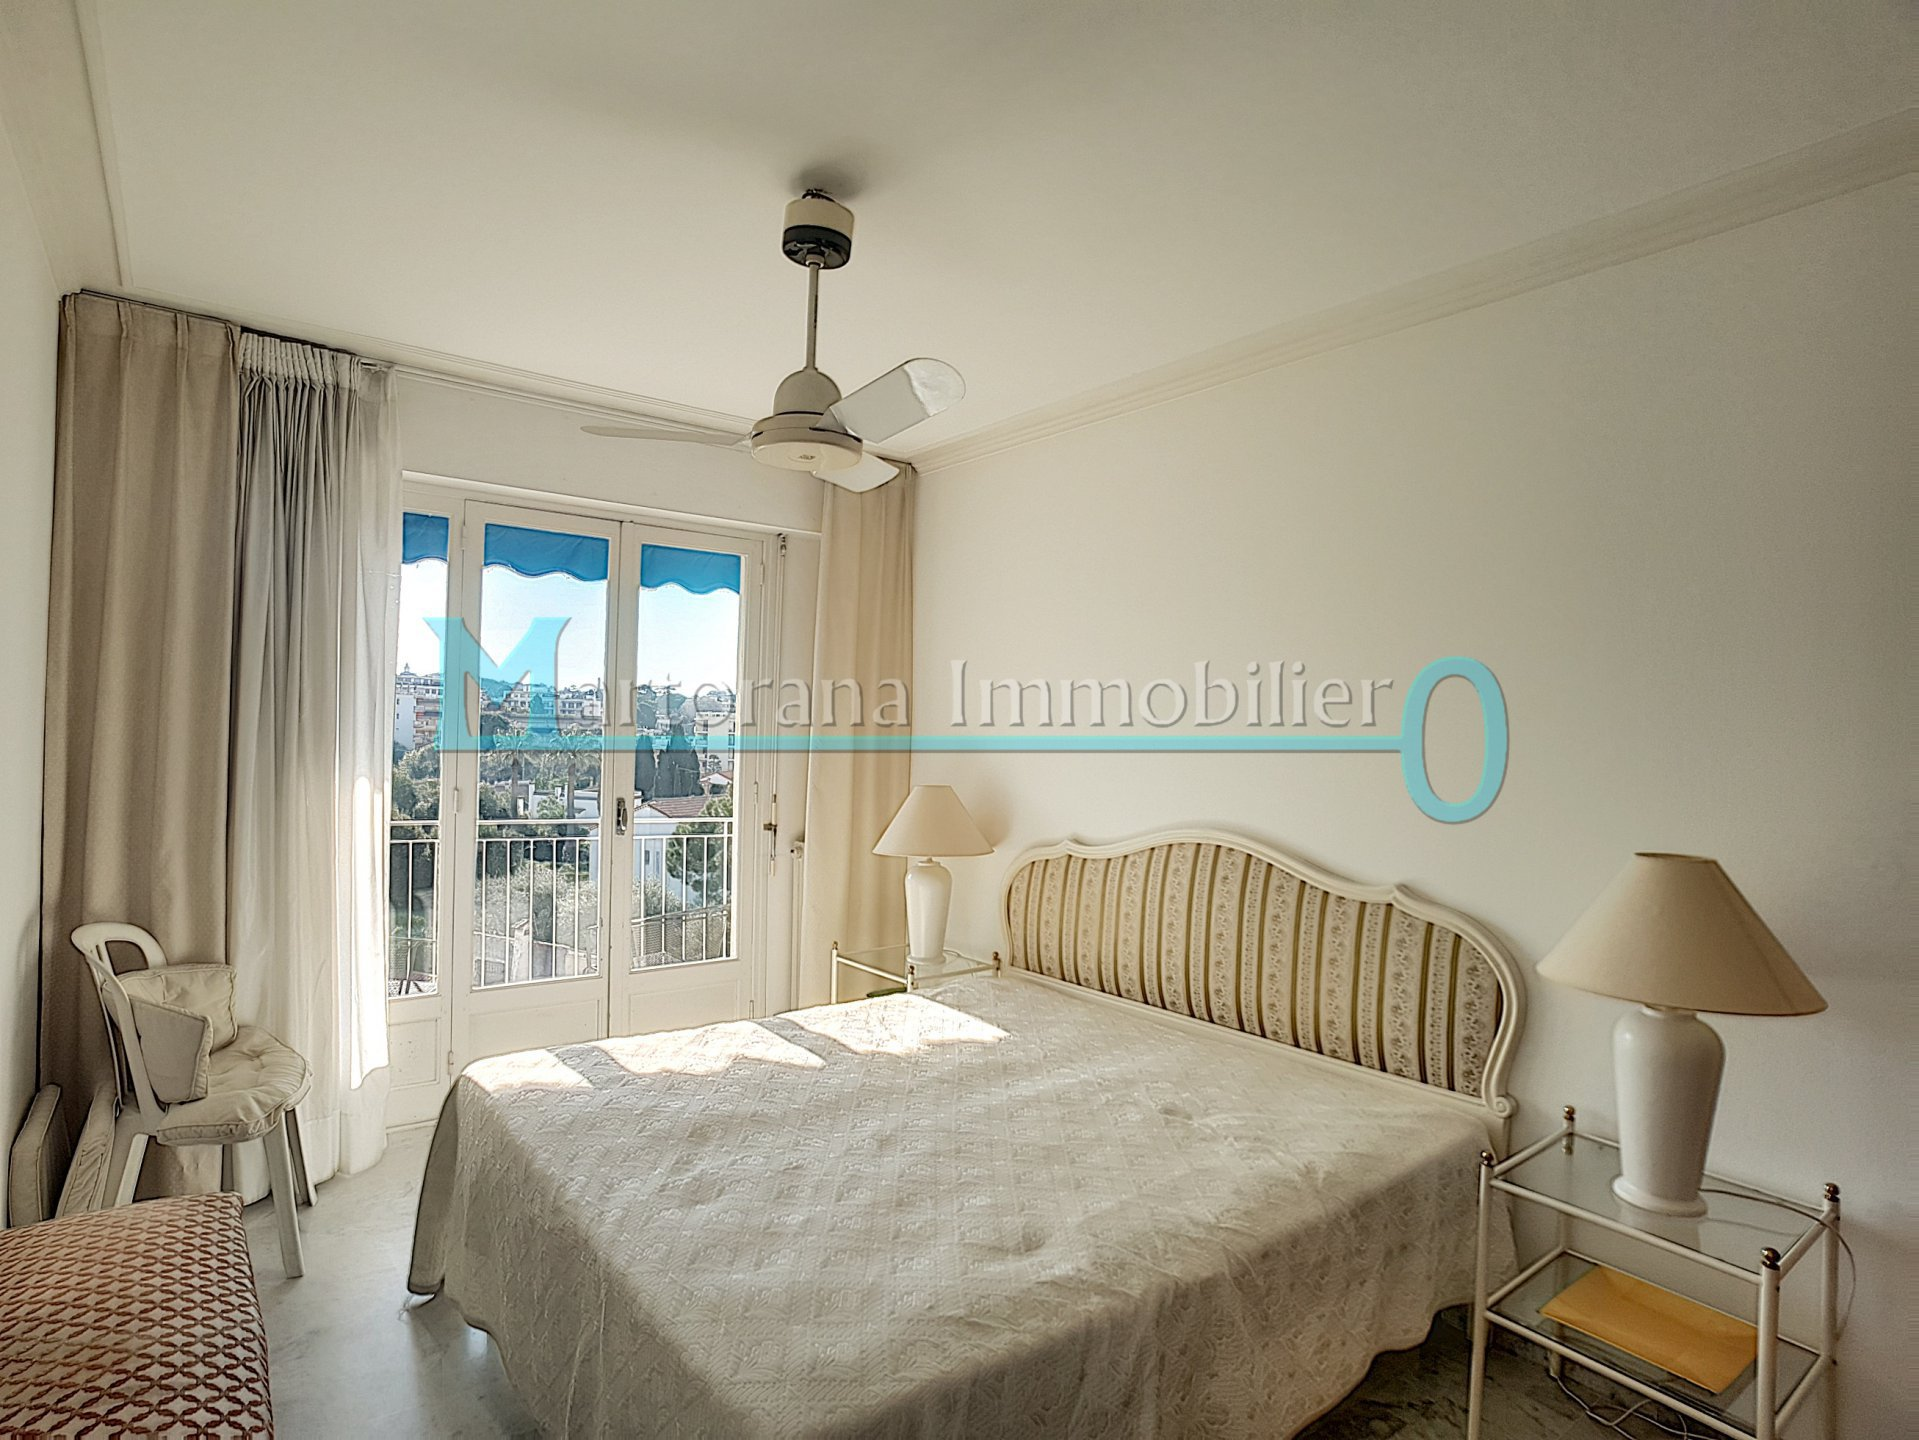 STUDENT rental : Large furnished 2 room apartment, in the heart of Antibes-Juan les Pins